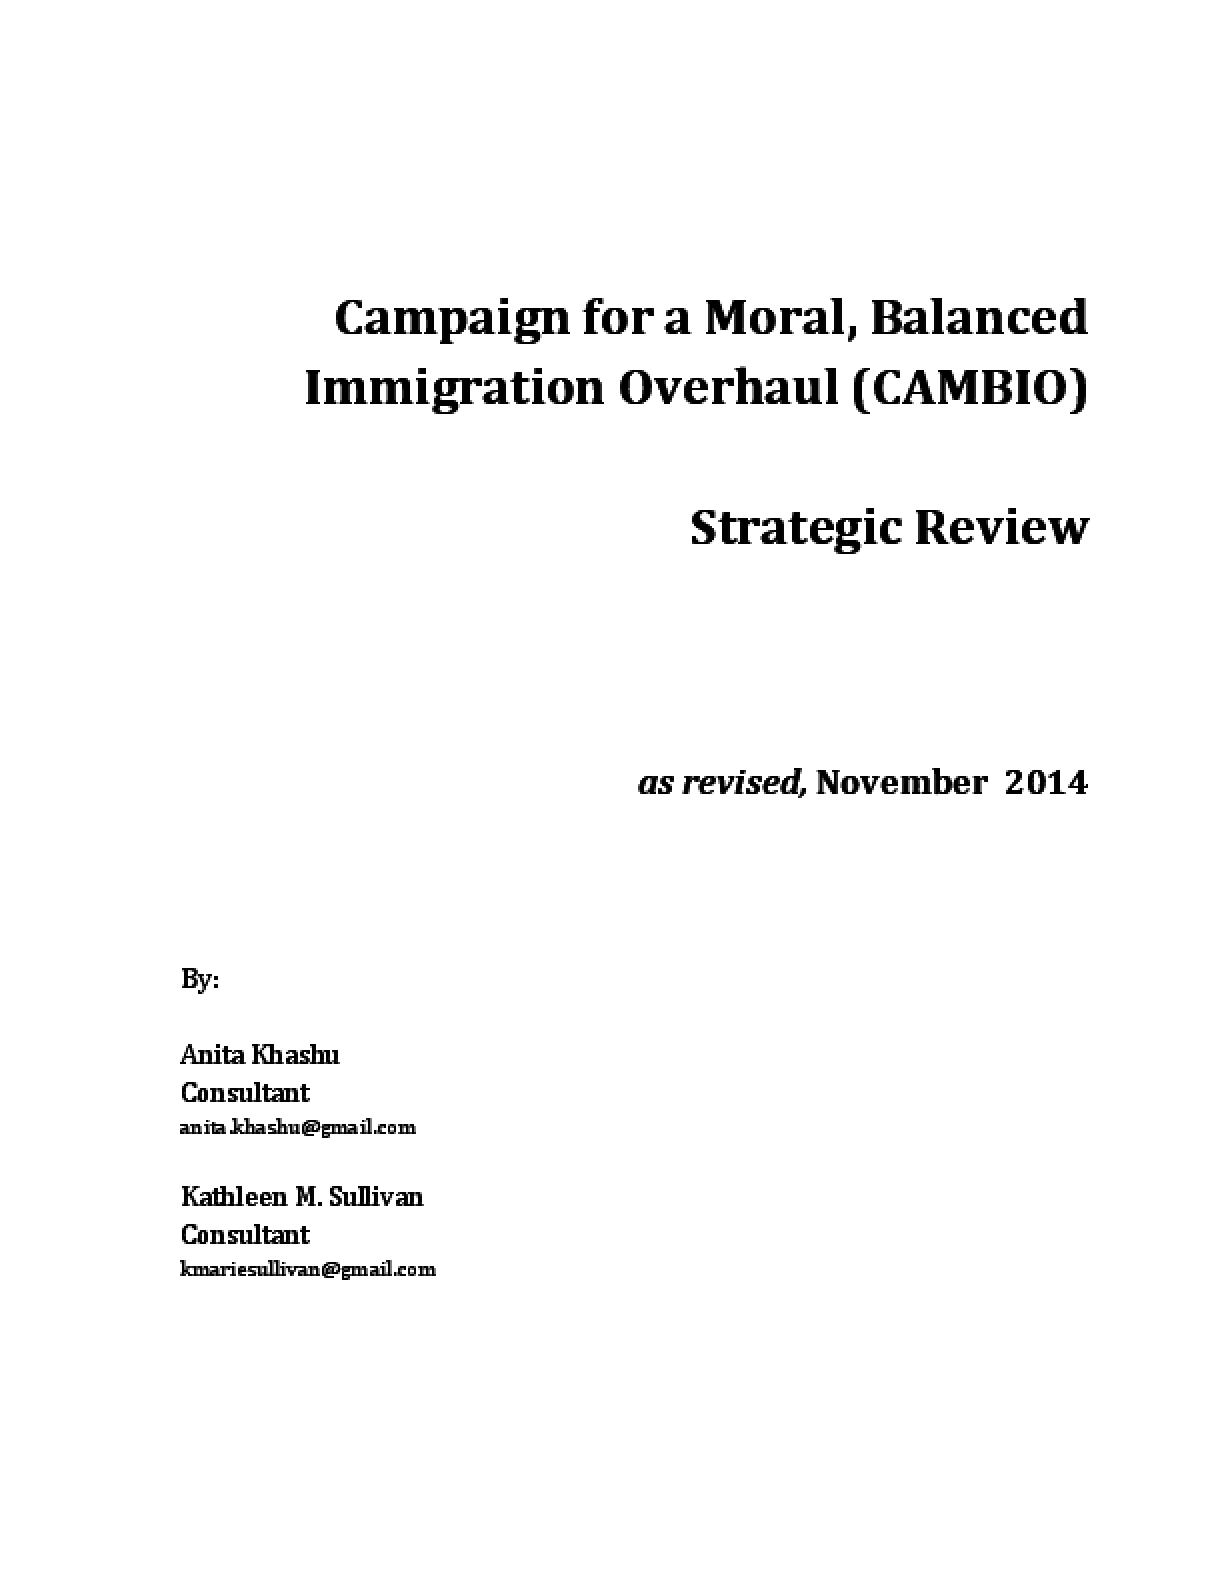 Campaign for a Moral, Balanced Immigration Overhaul (CAMBIO), Strategic Review